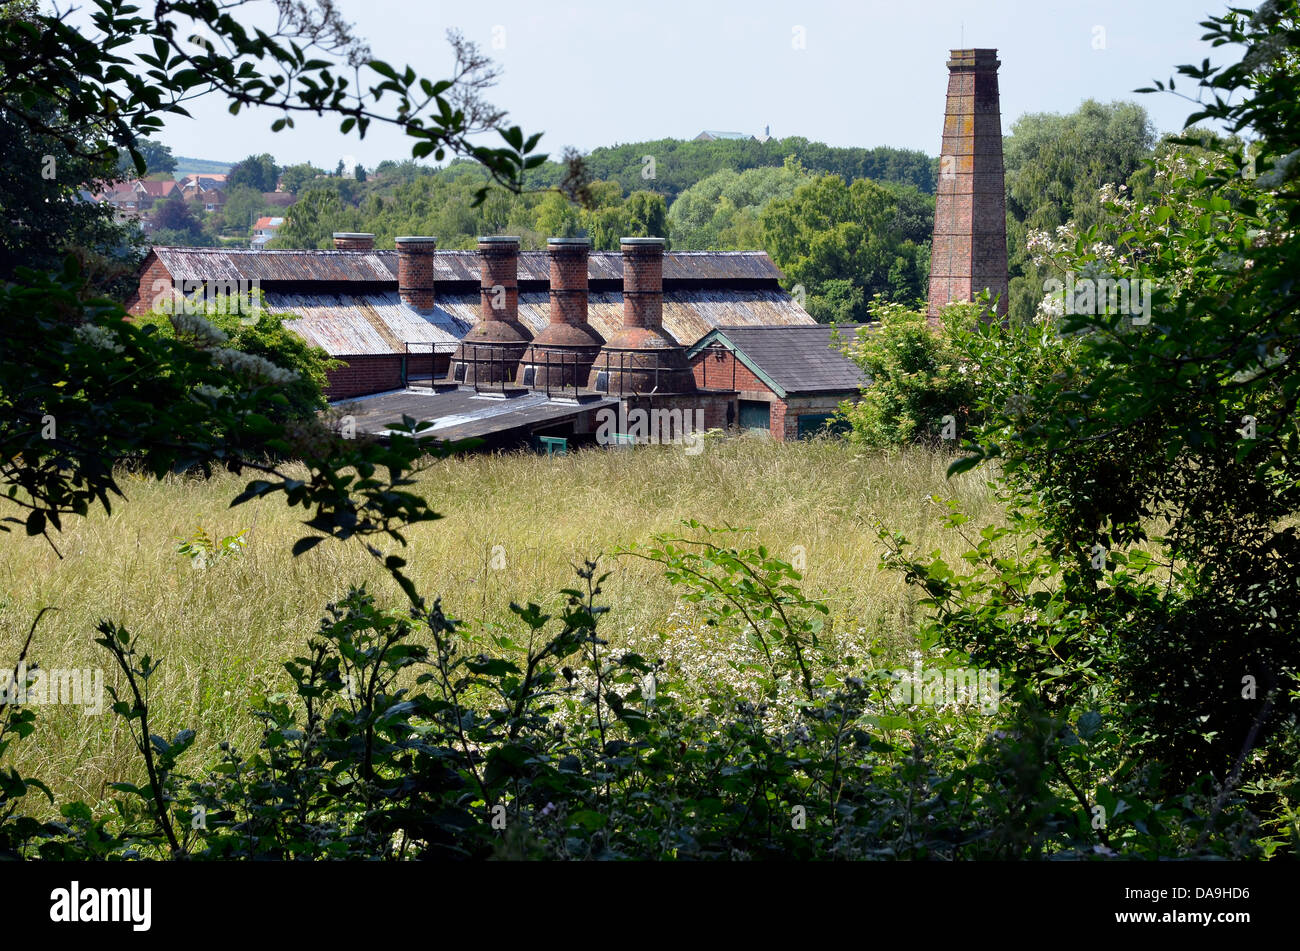 Twyford Water Works, a preserved Edwardian pumping station in Hampshire - Stock Image